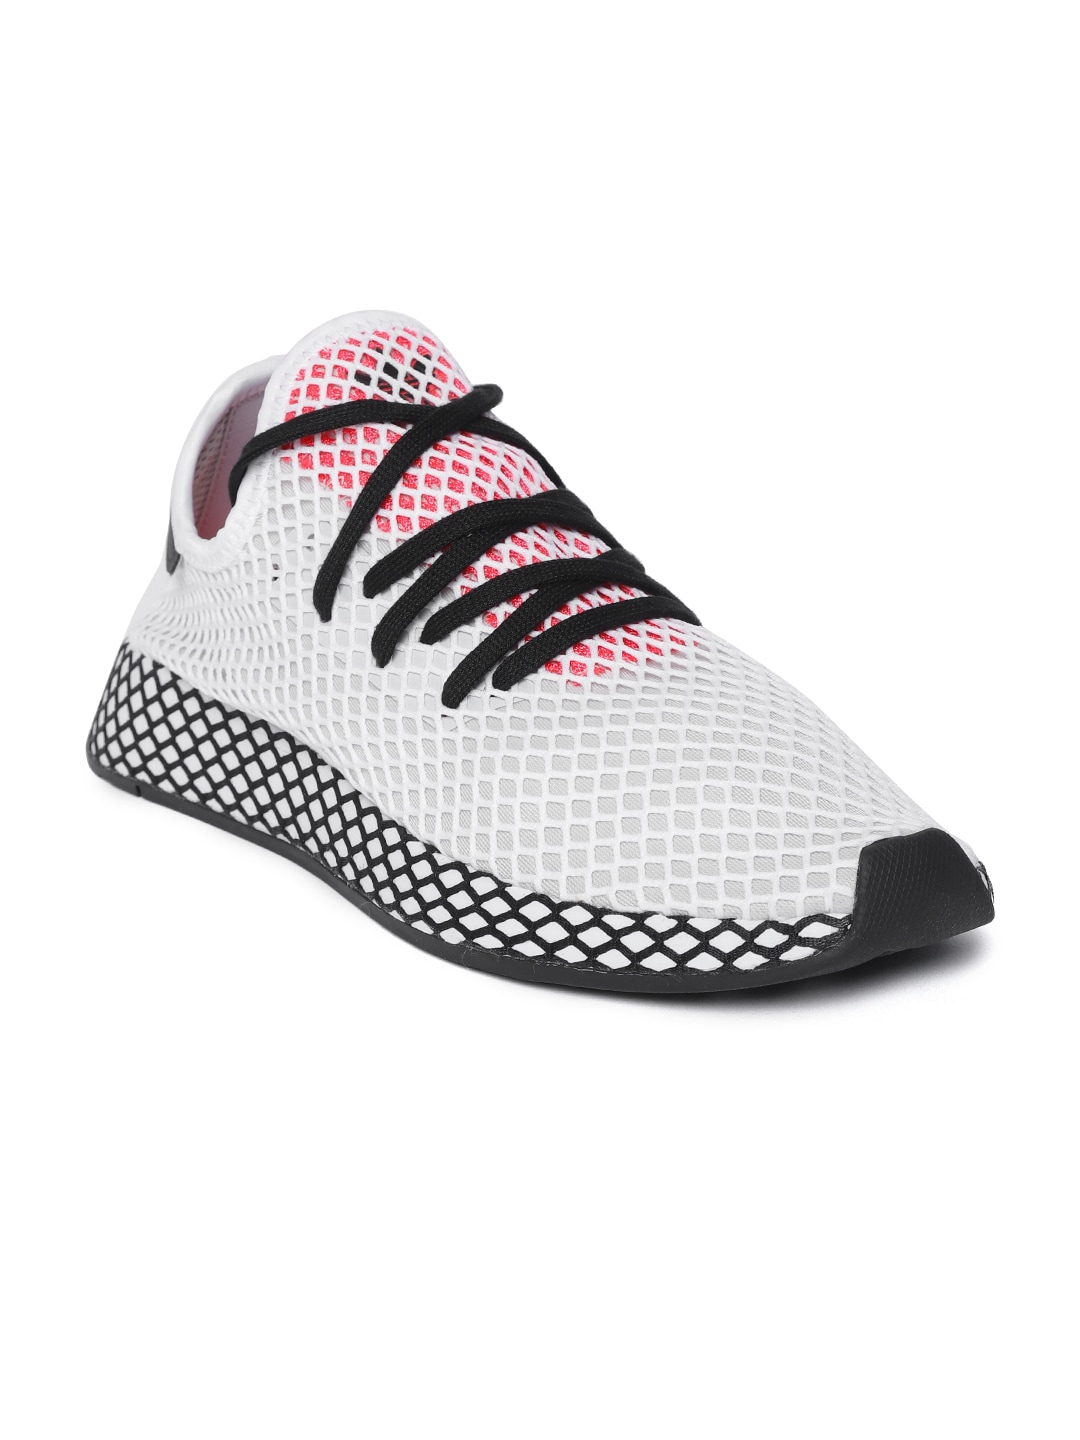 273a51058c56c Mesh Sneakers - Buy Mesh Sneakers online in India